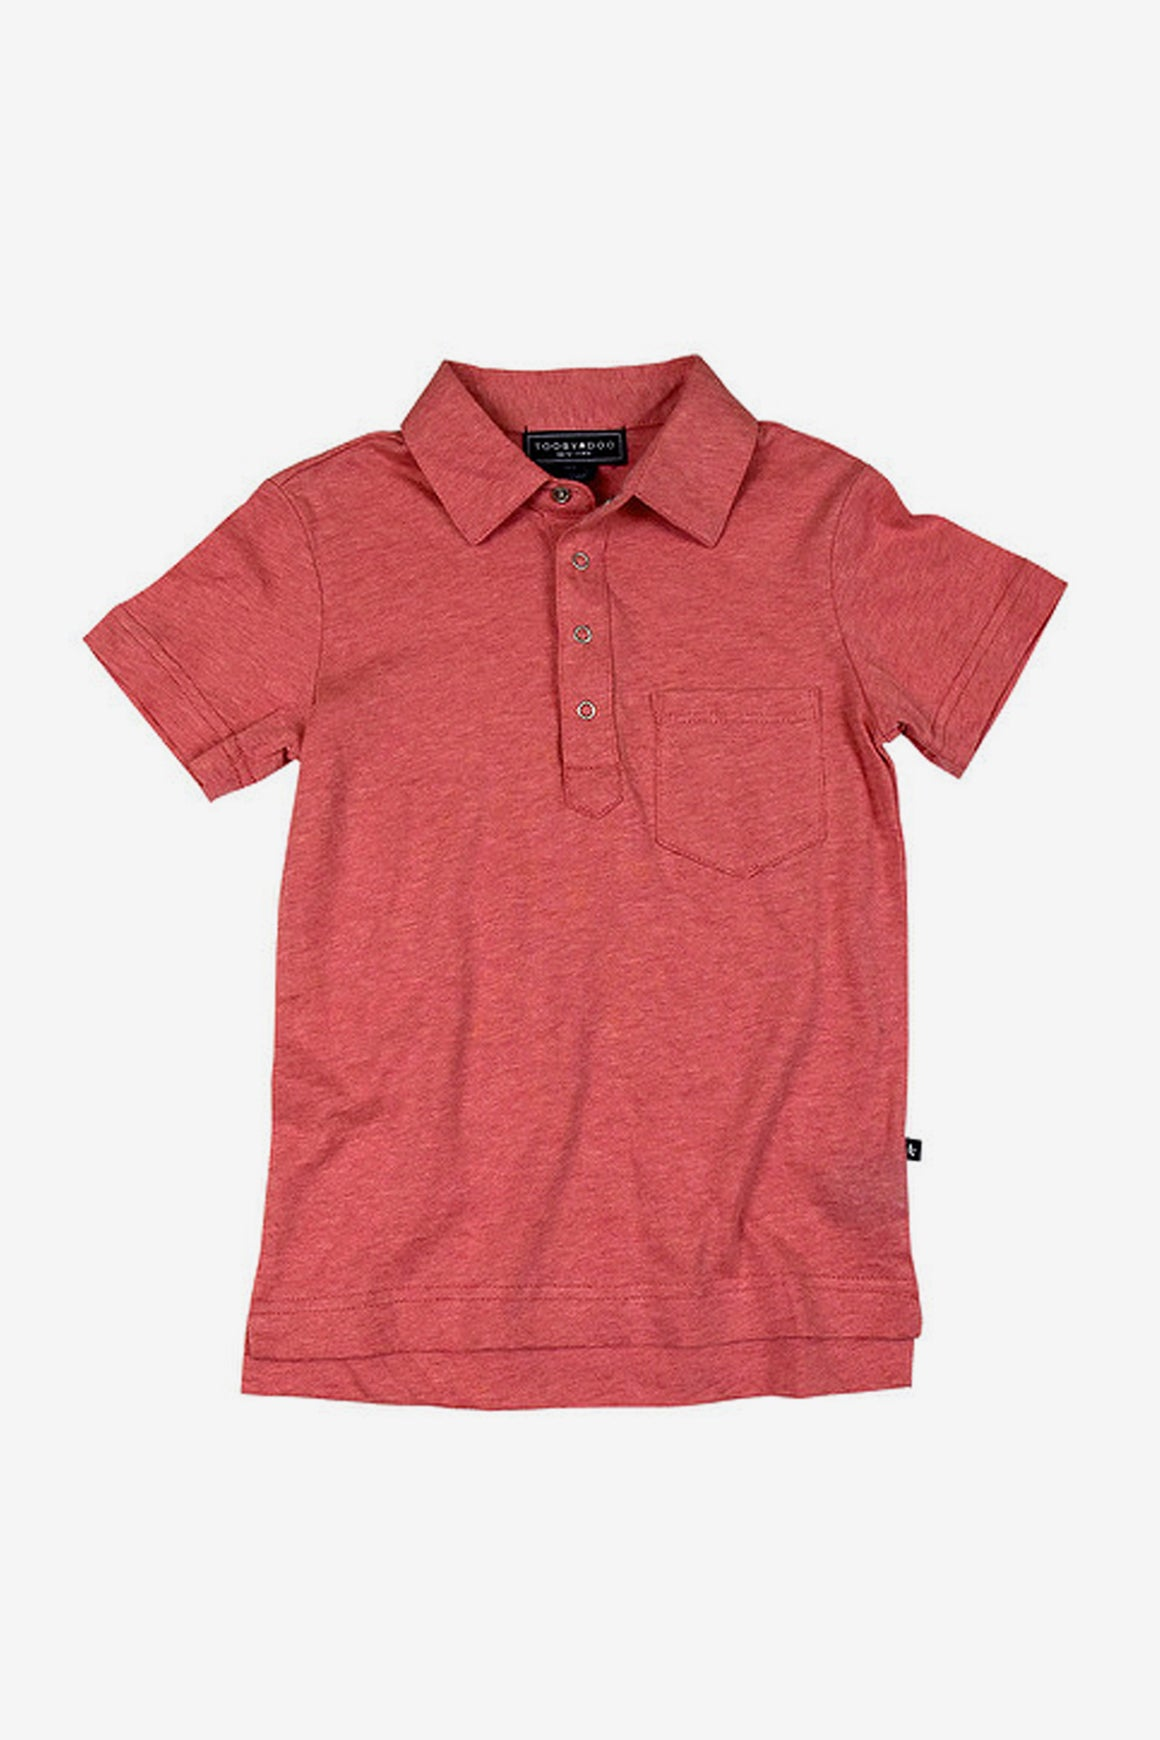 Toobydoo Studio Polo - Red